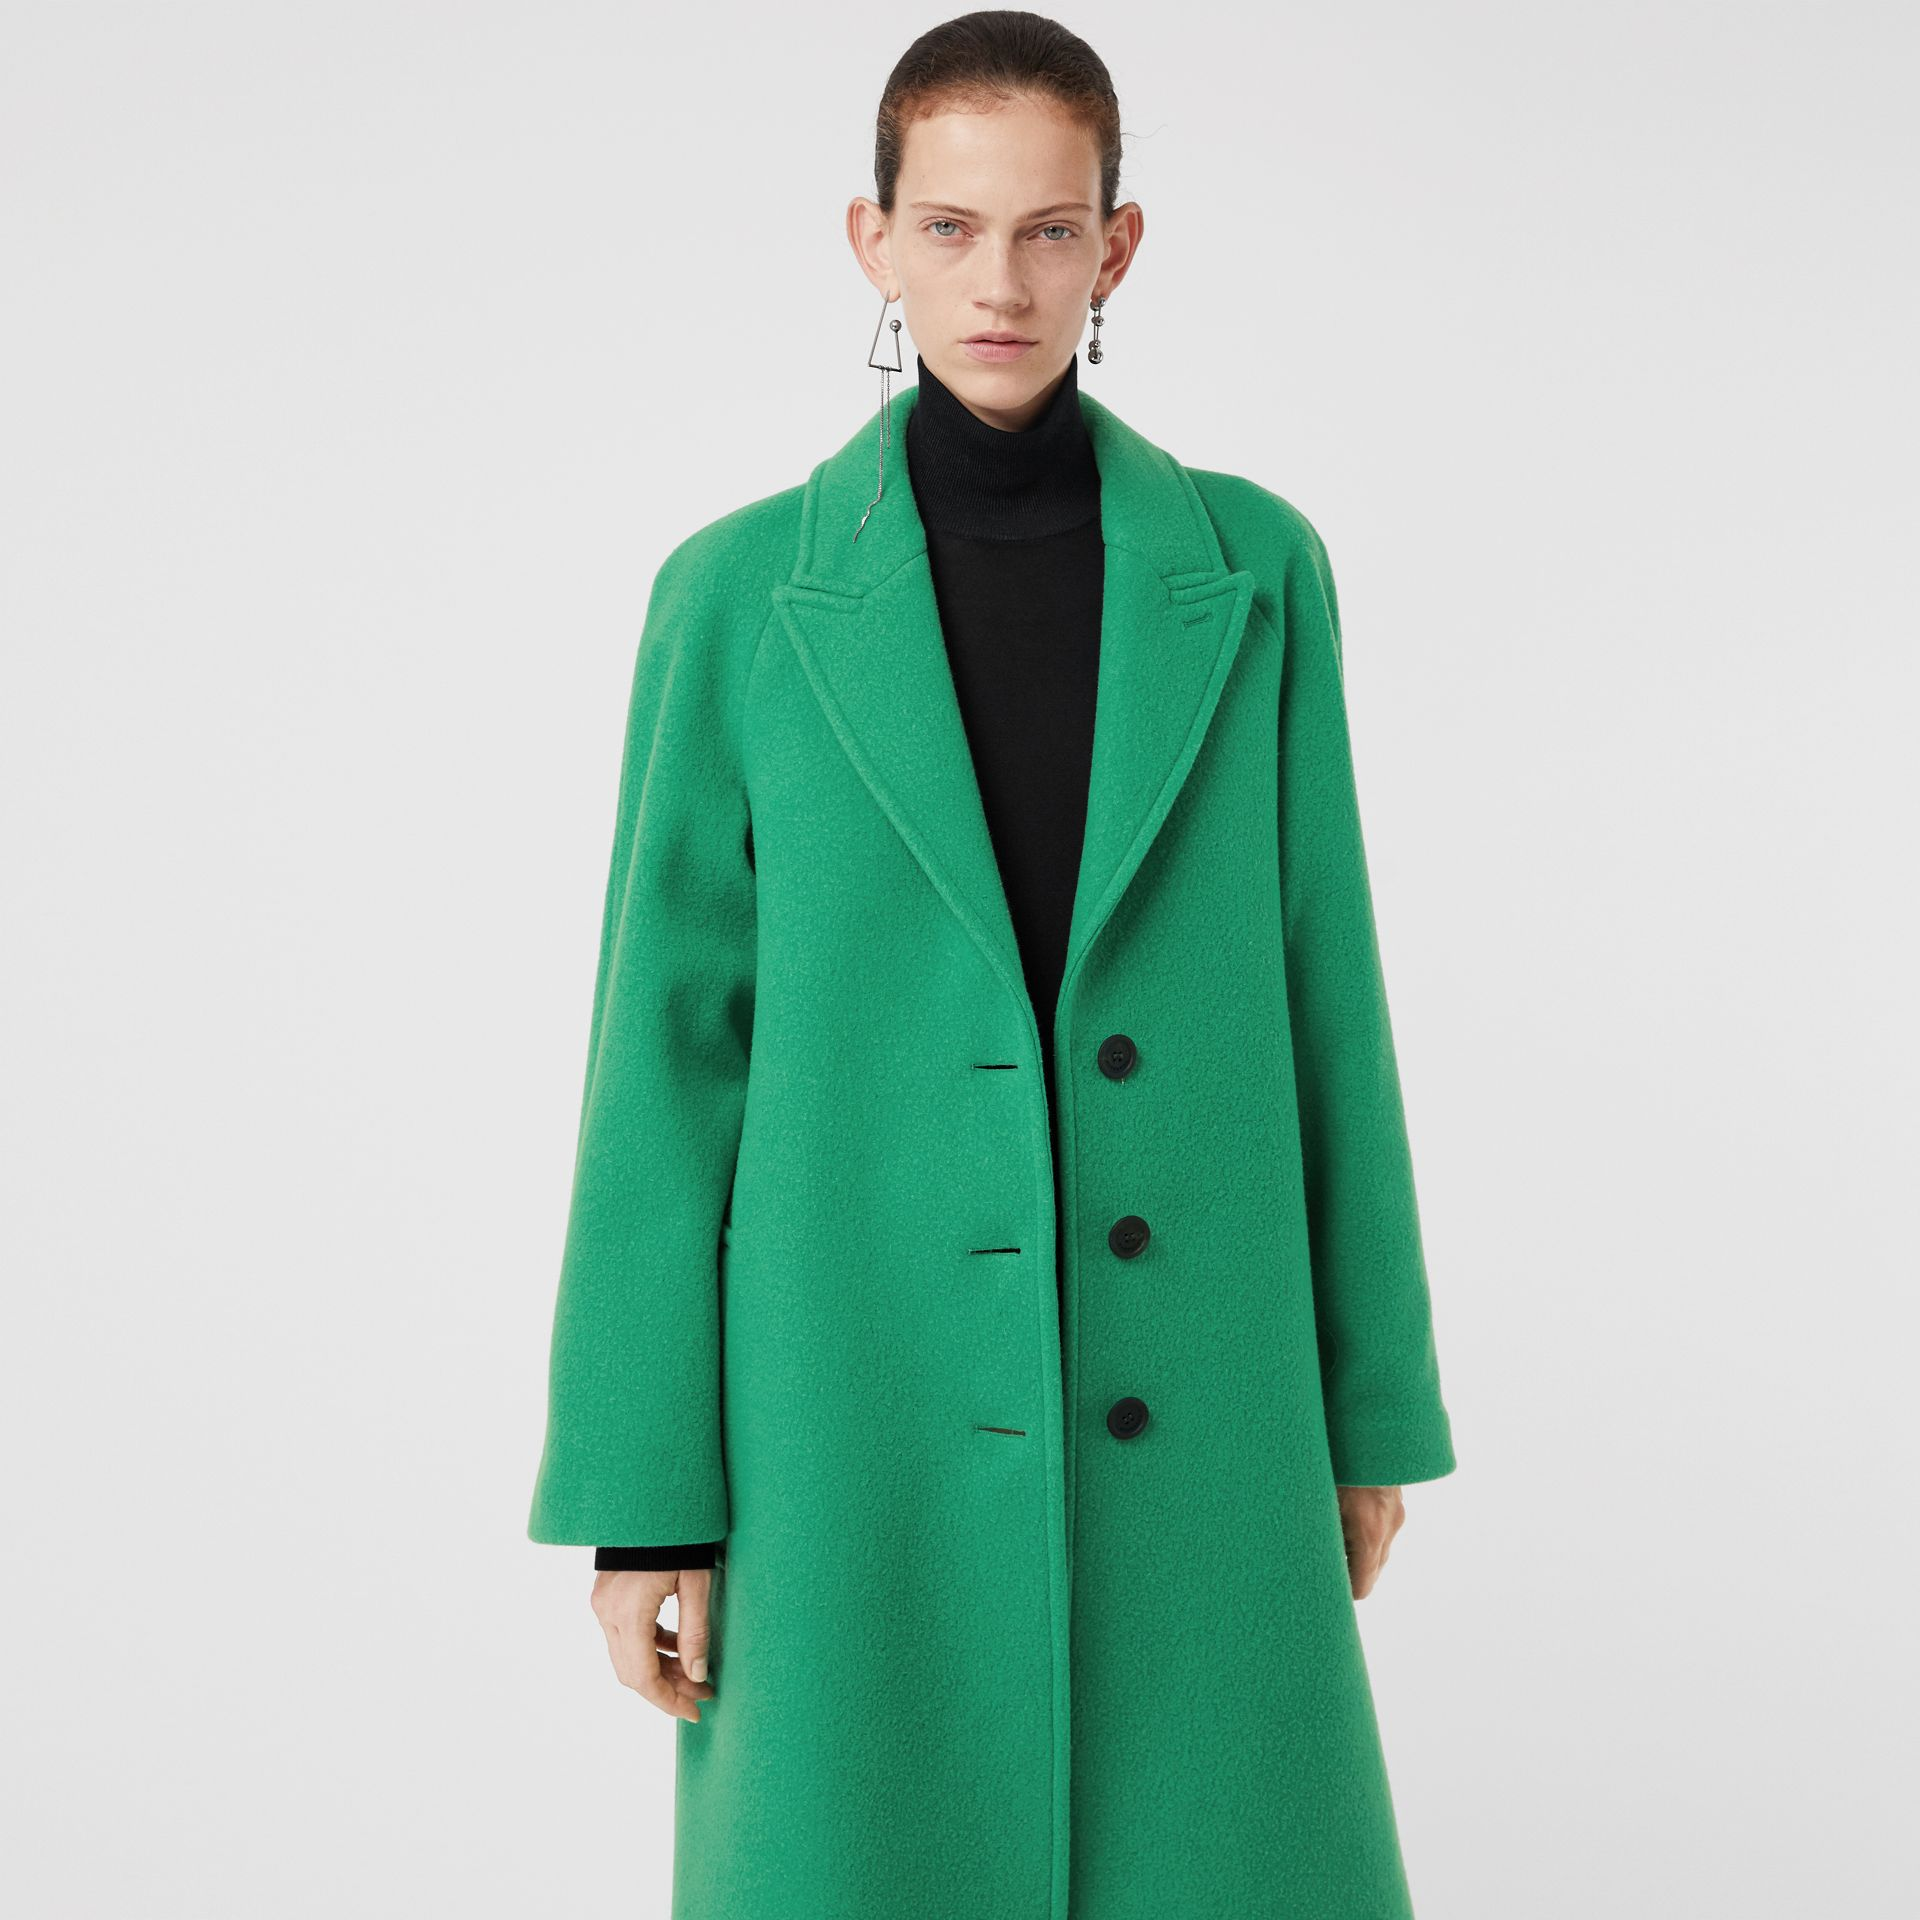 Wool Blend Tailored Coat in Bright Green - Women | Burberry United States - gallery image 4